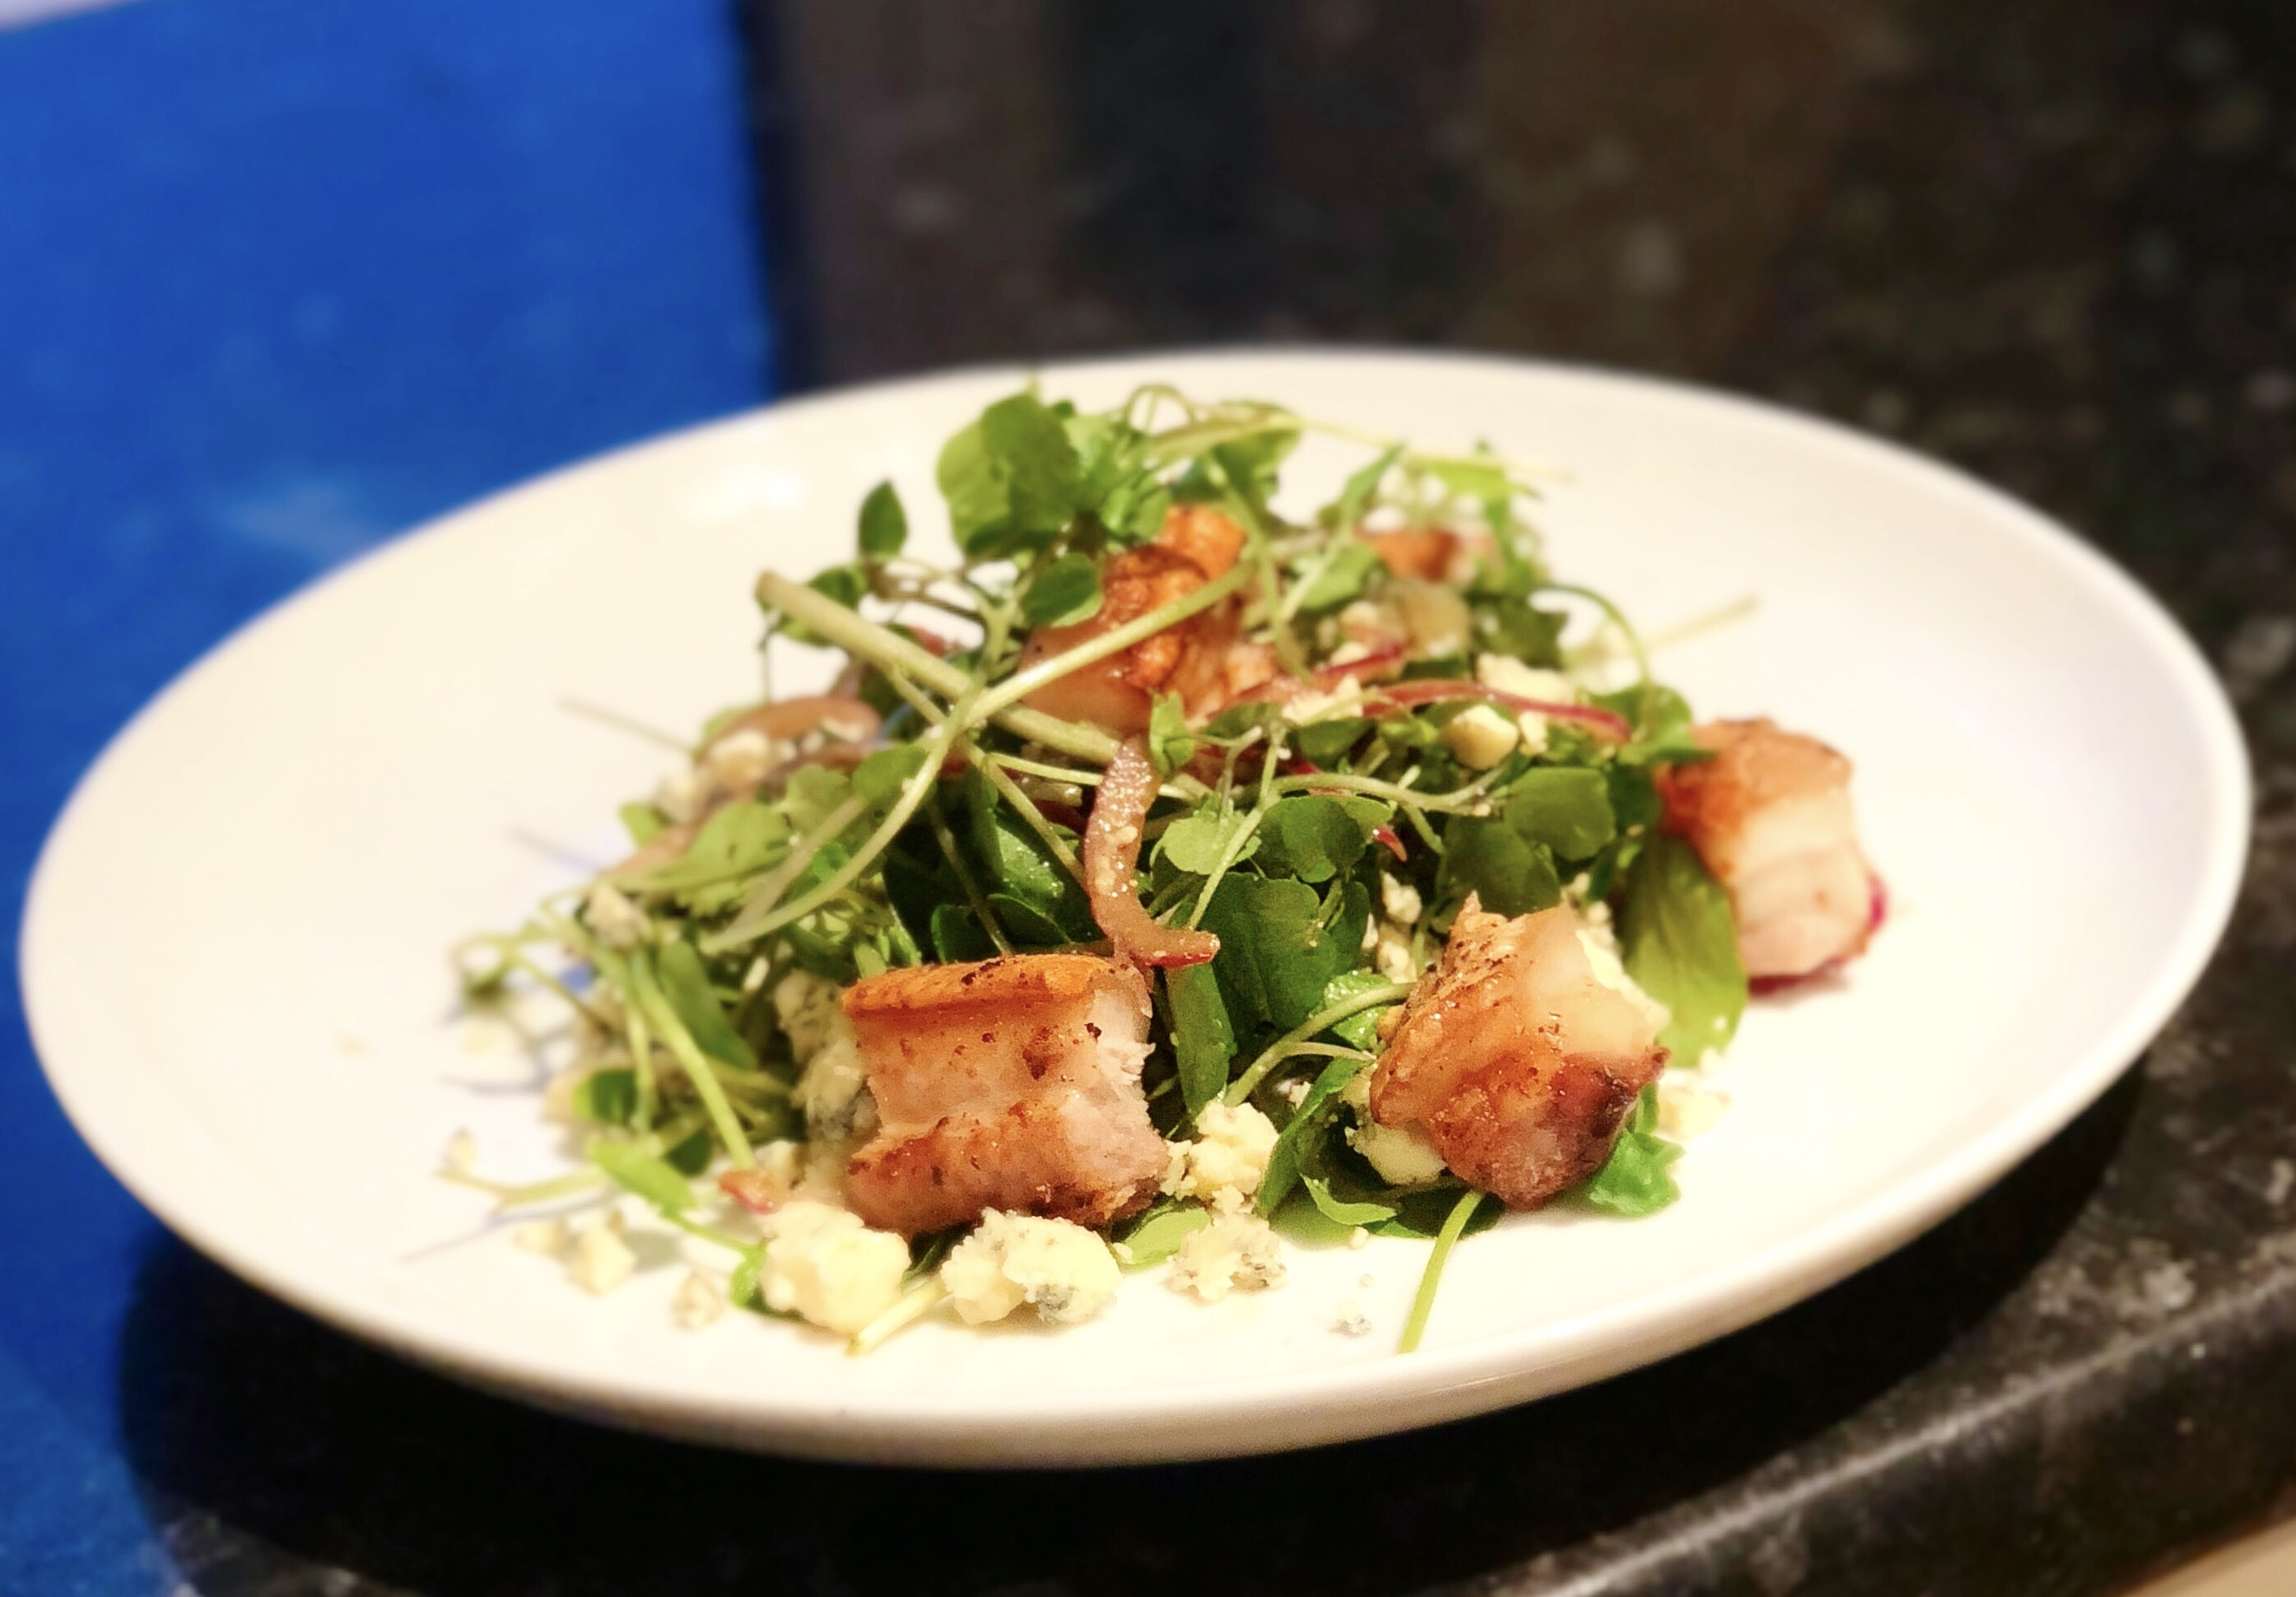 Salt and pepper pork belly with watercress, blue cheese and pickled red onion salad